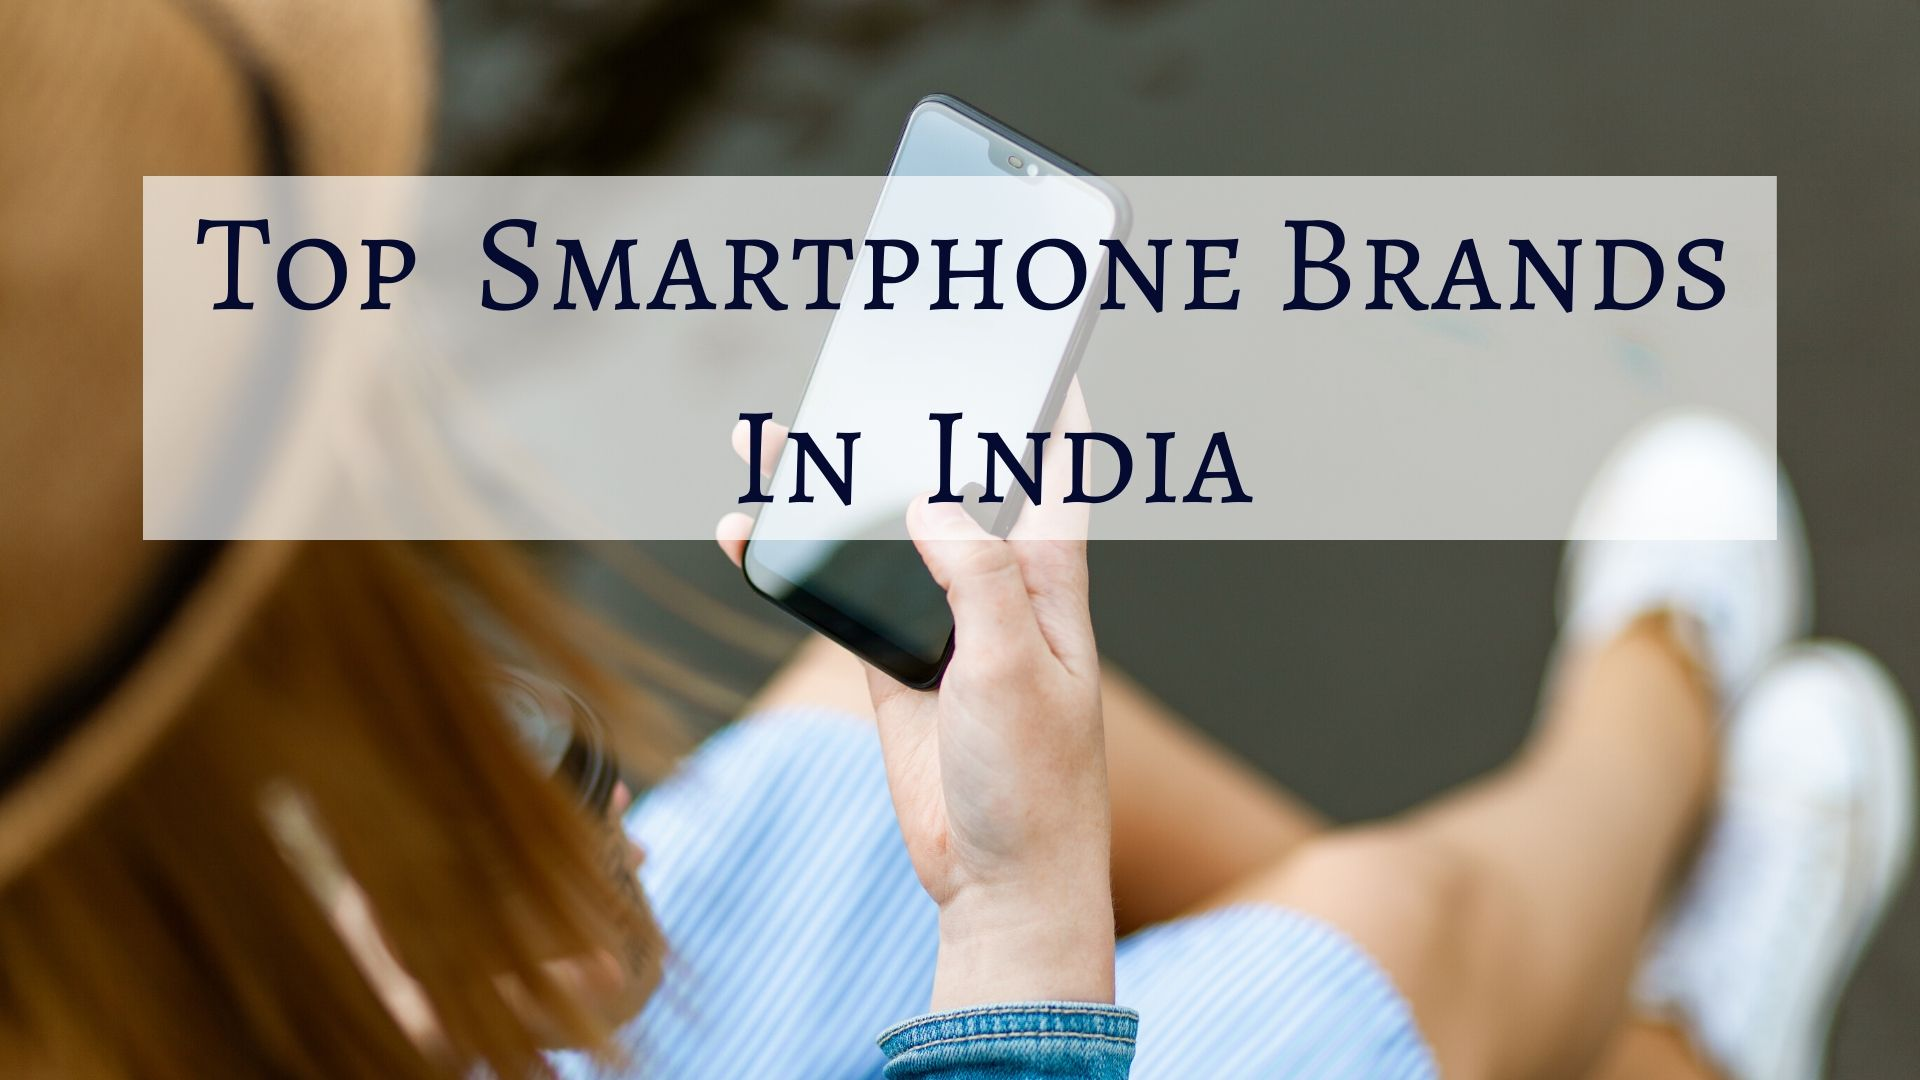 Top Smartphone Brands In India